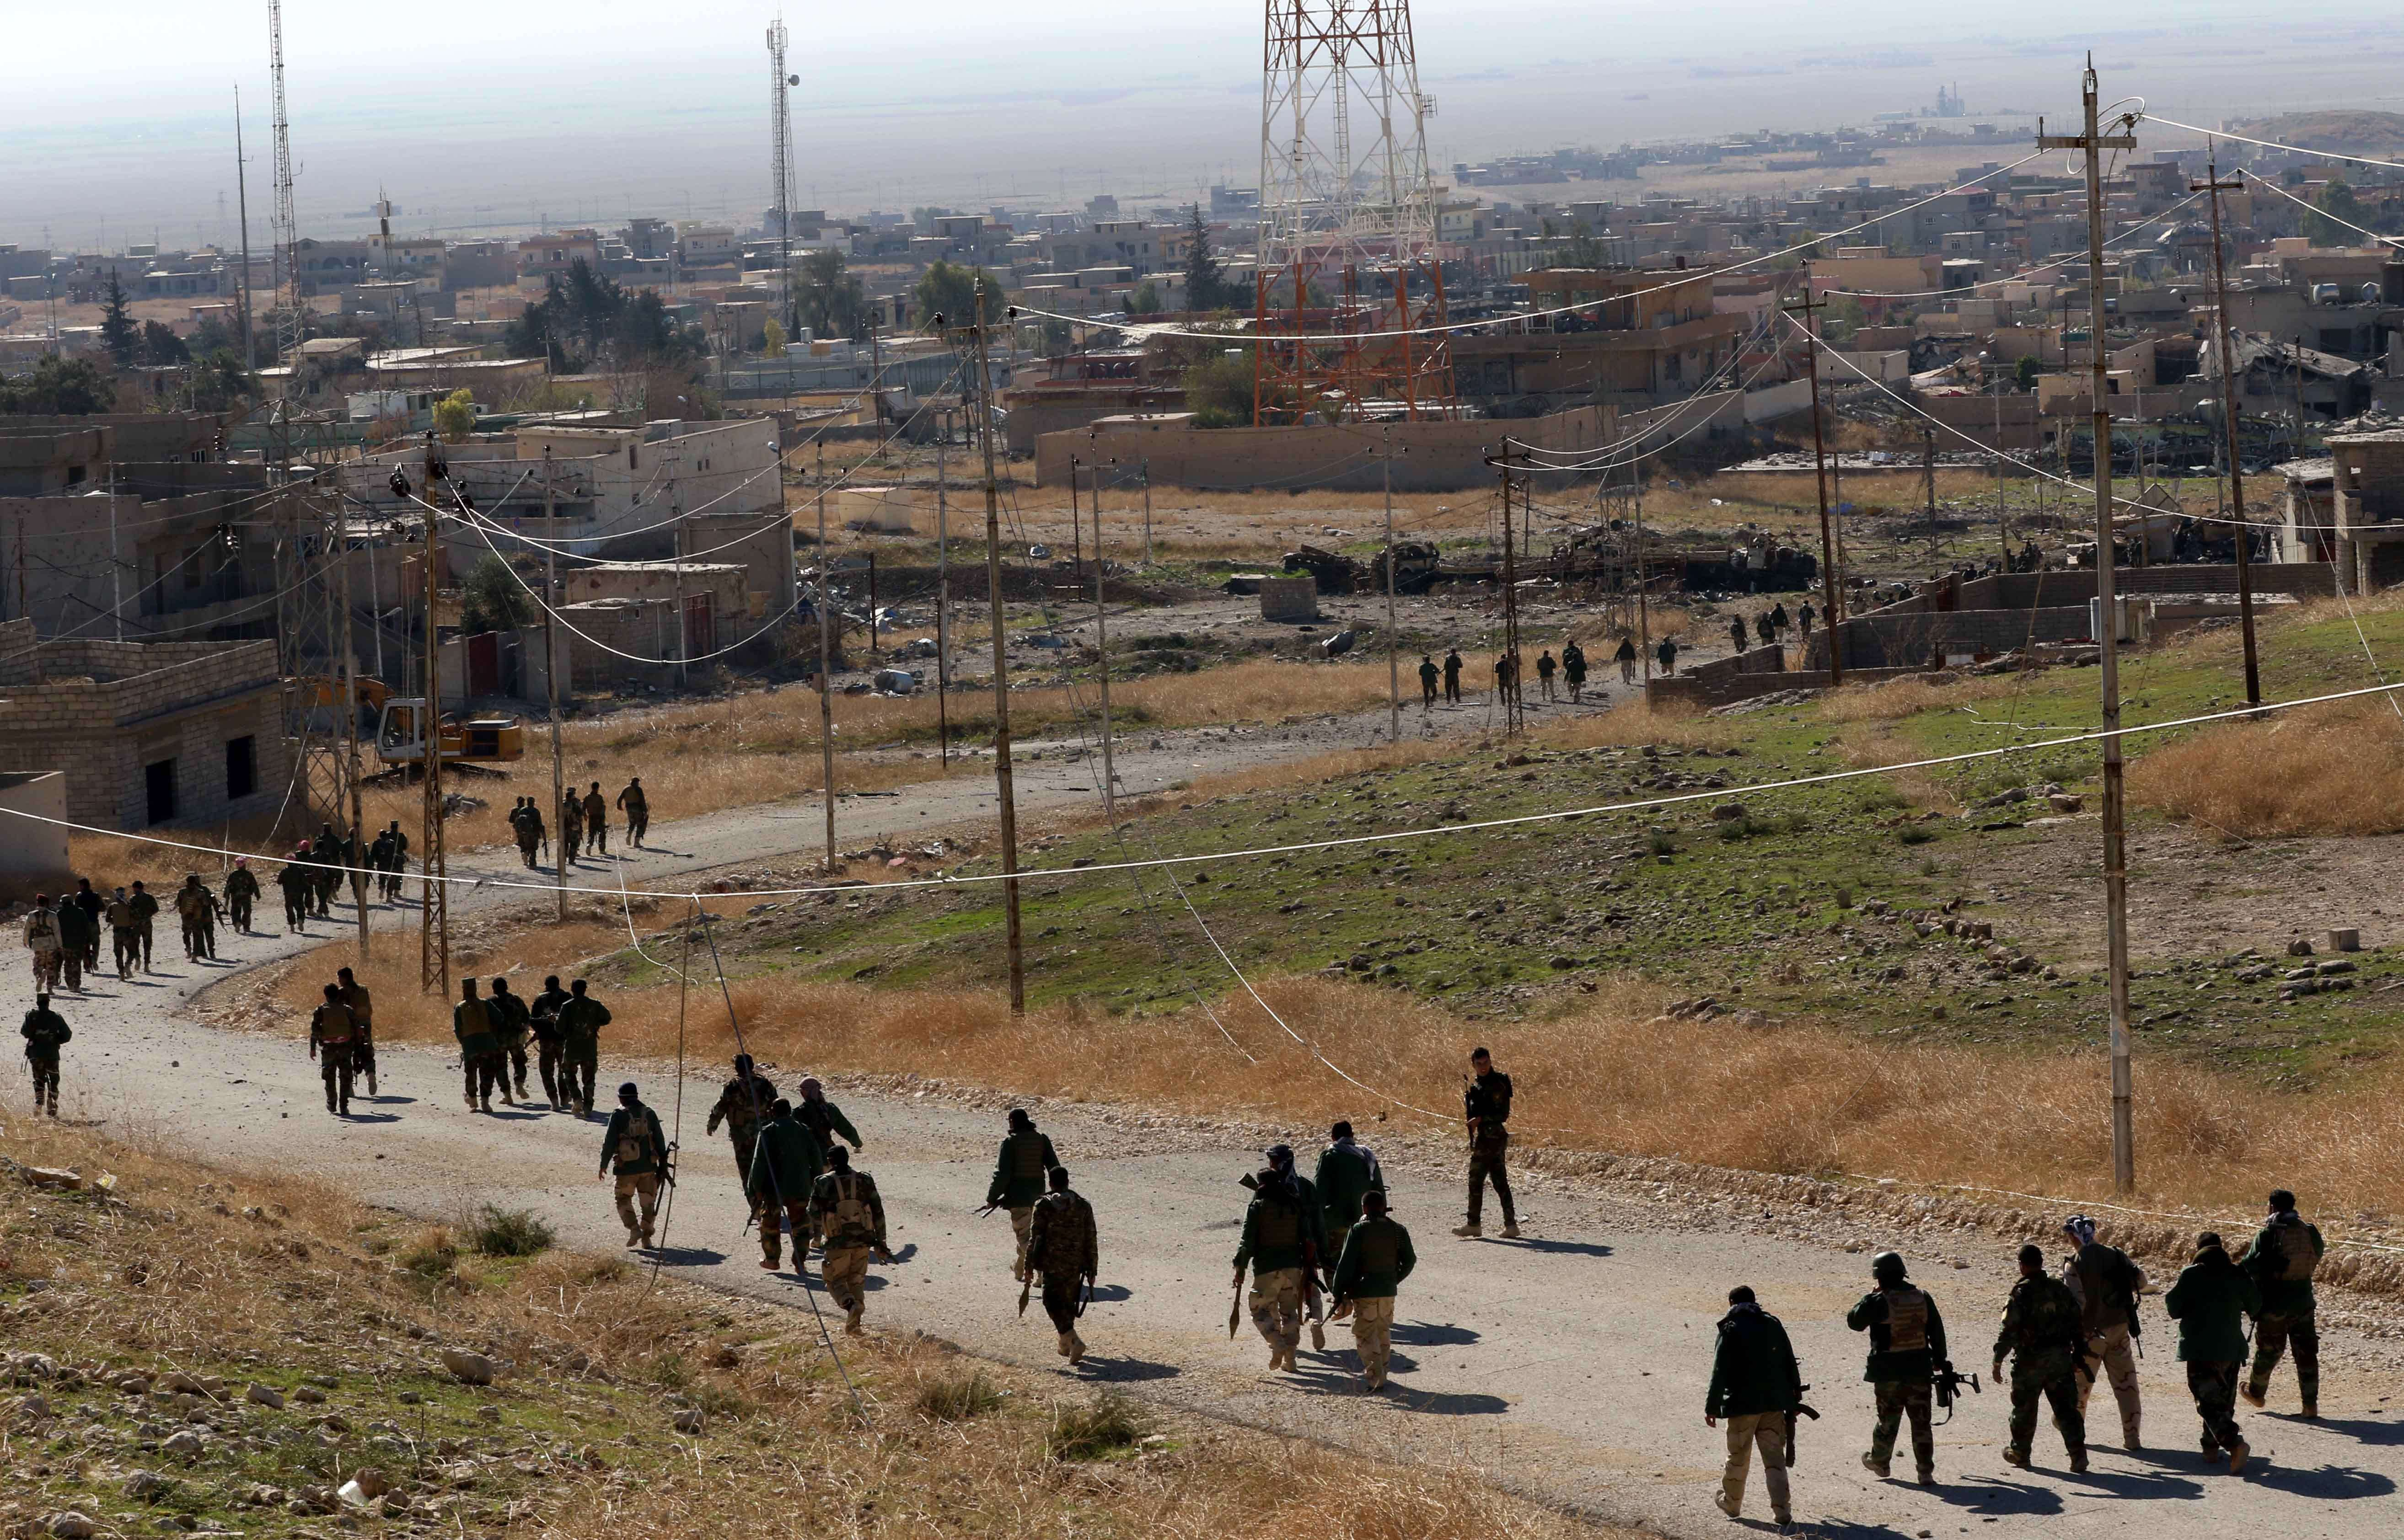 Iraqi Kurdish forces and fighters from the Yazidi minority, a local Kurdish-speaking community targeted in a brutal ISIS campaign of massacres, enslavement and rape, enter the Iraqi city of Sinjar on Nov. 11, 2015.